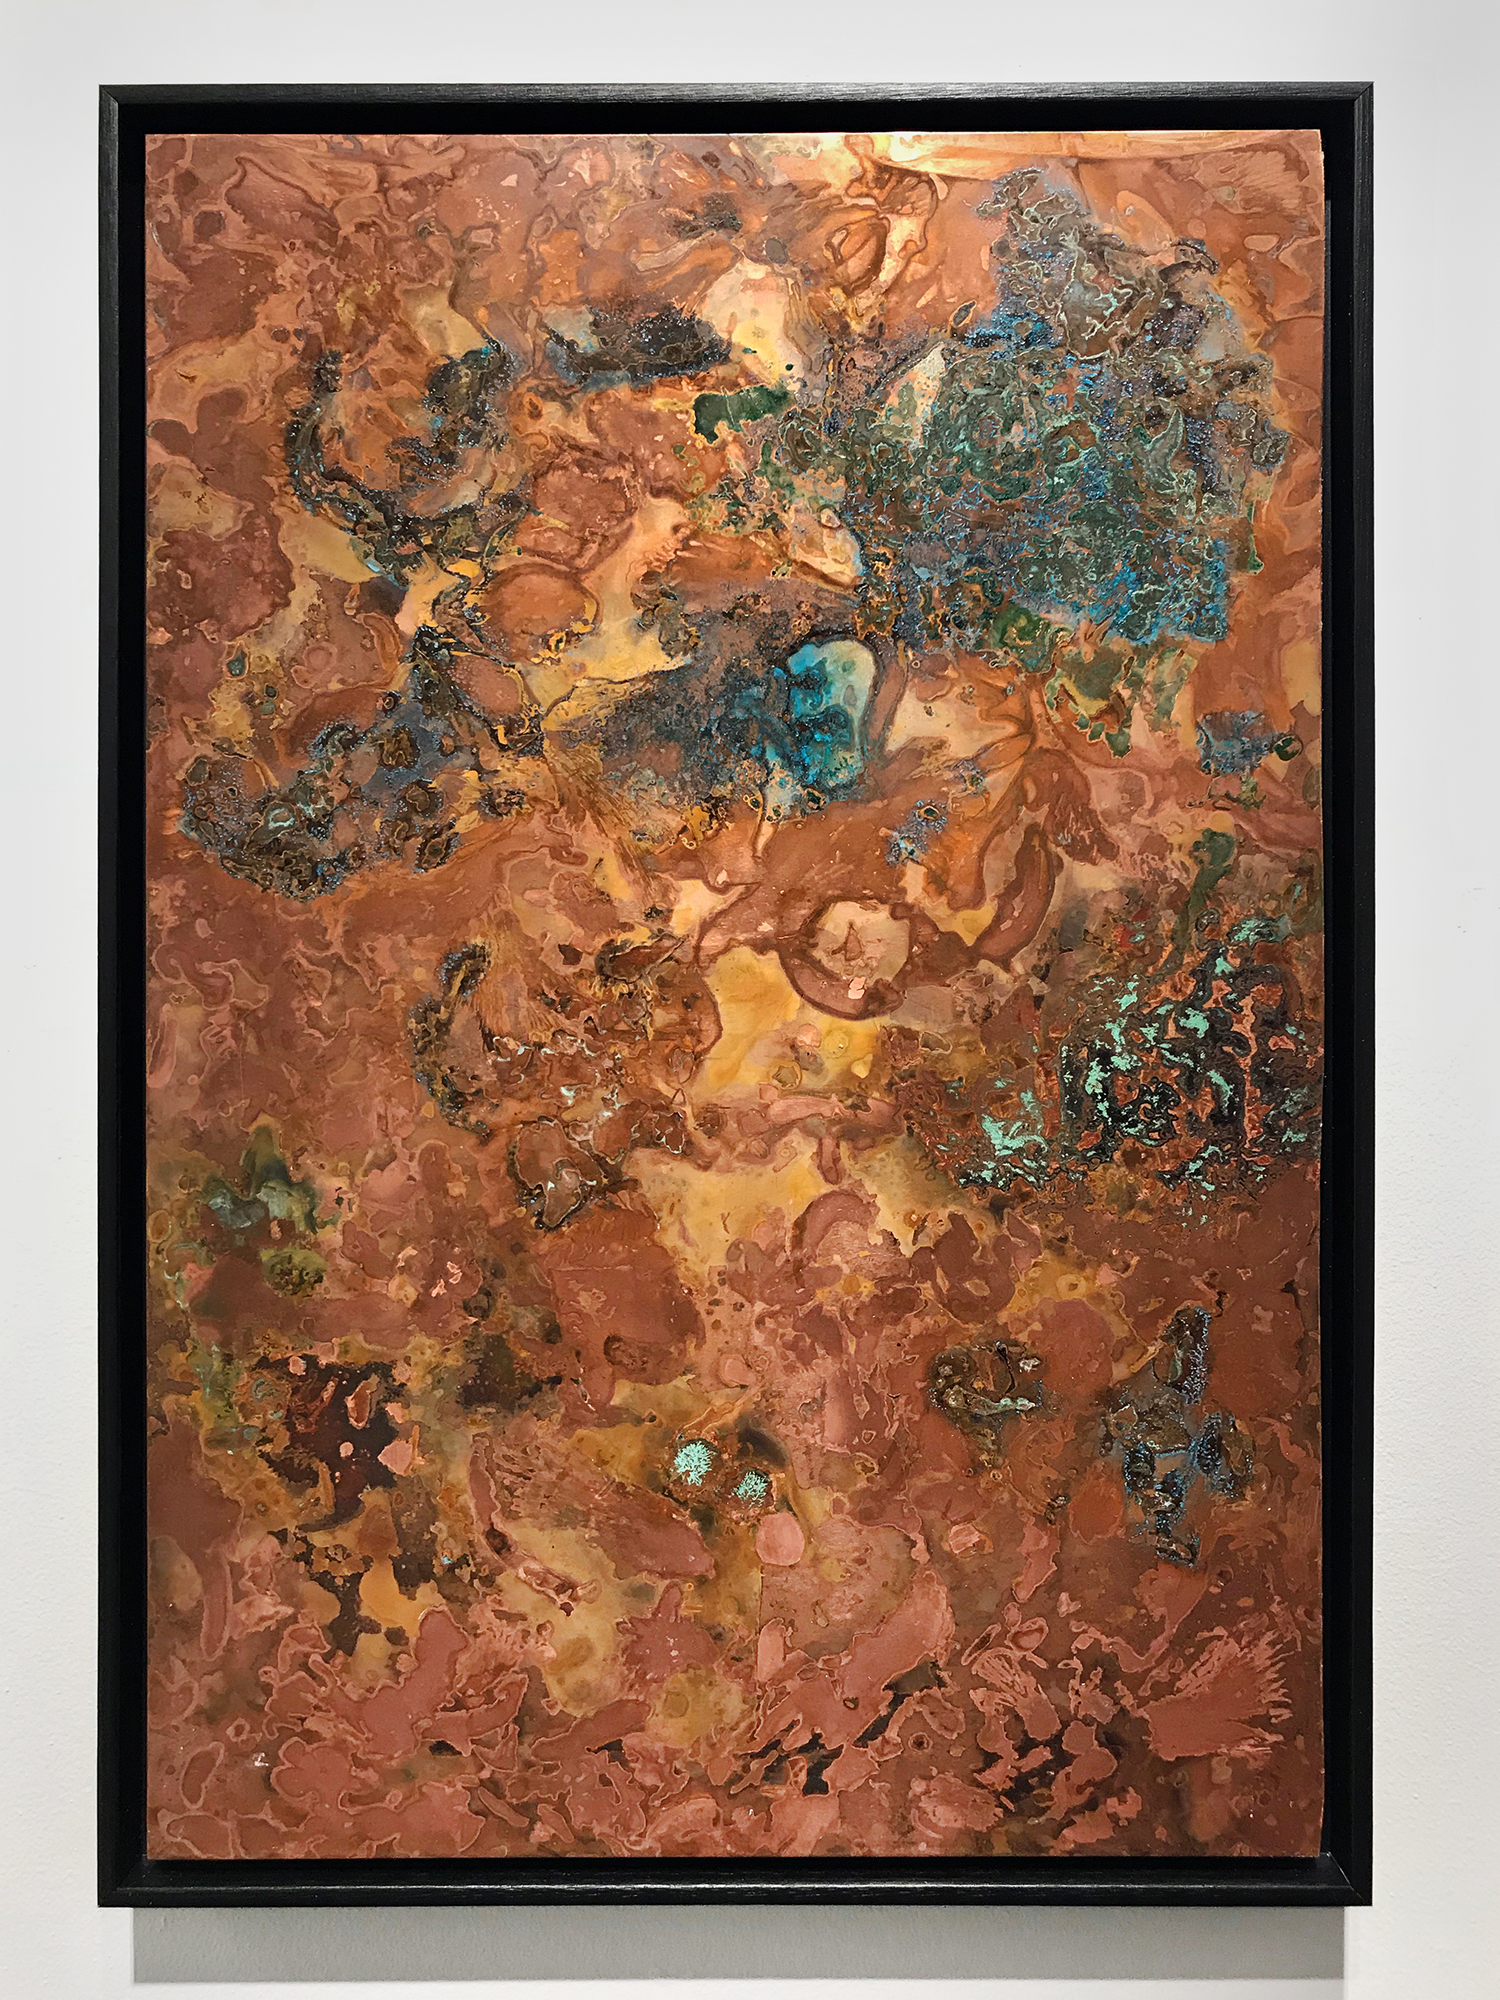 """Studio ThinkingHand """"Oxidized Metal Plate #1: Copper,� 2018 (Copper plate oxidized with various rotting mushrooms. 41(w) x 58(h)cm)."""